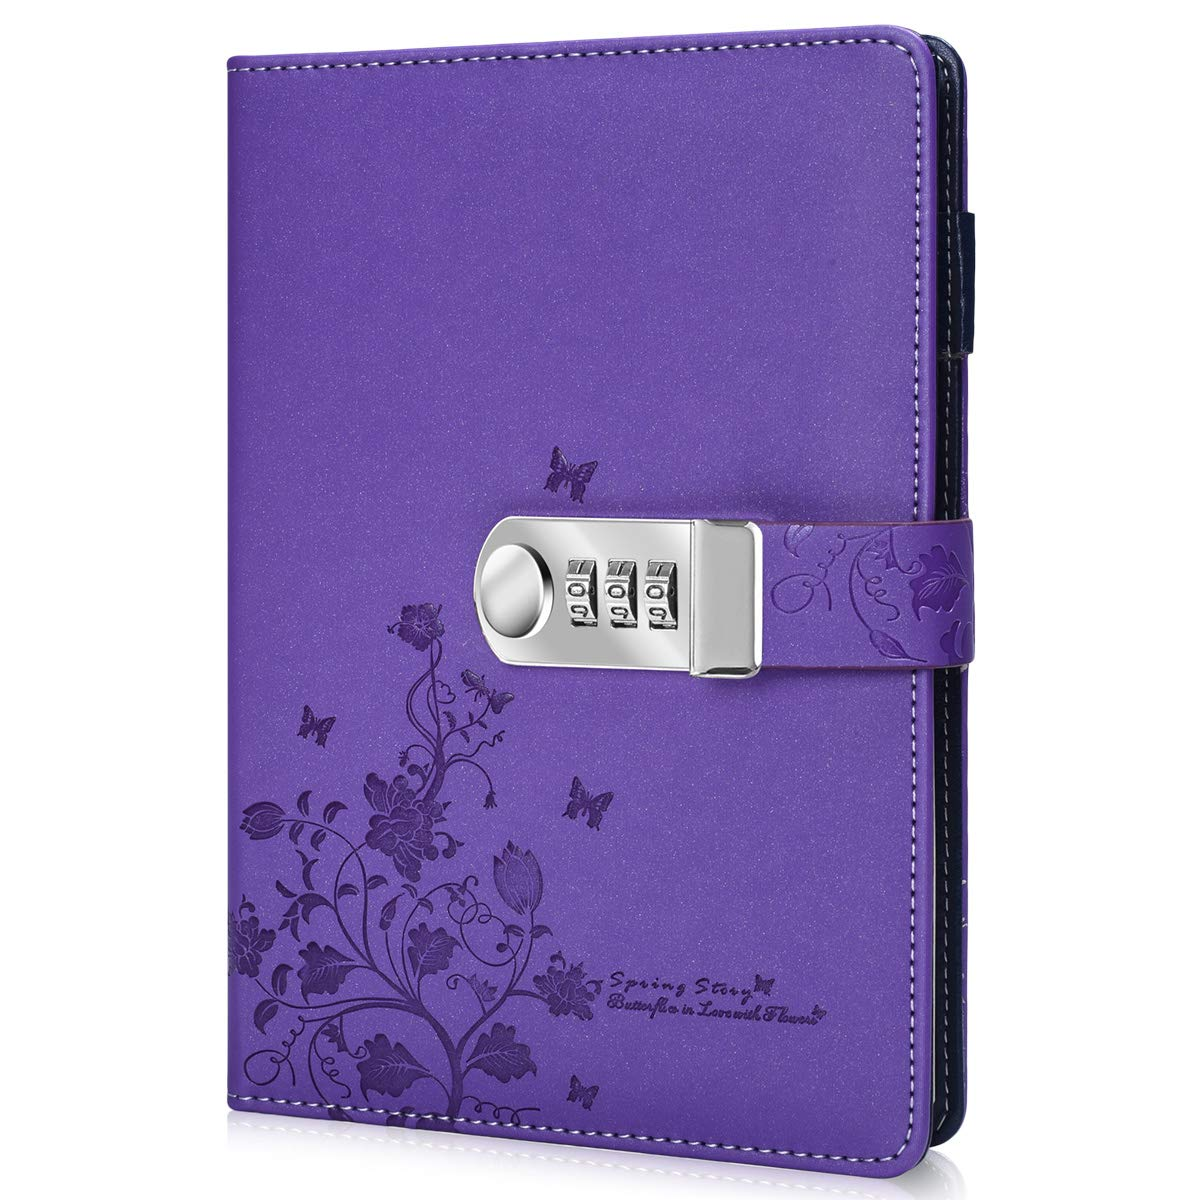 ARRLSDB PU Leather Journal with Lock, A5 Size Diary with Combination Lock Password Notebook Locking Personal Diary (Purple)